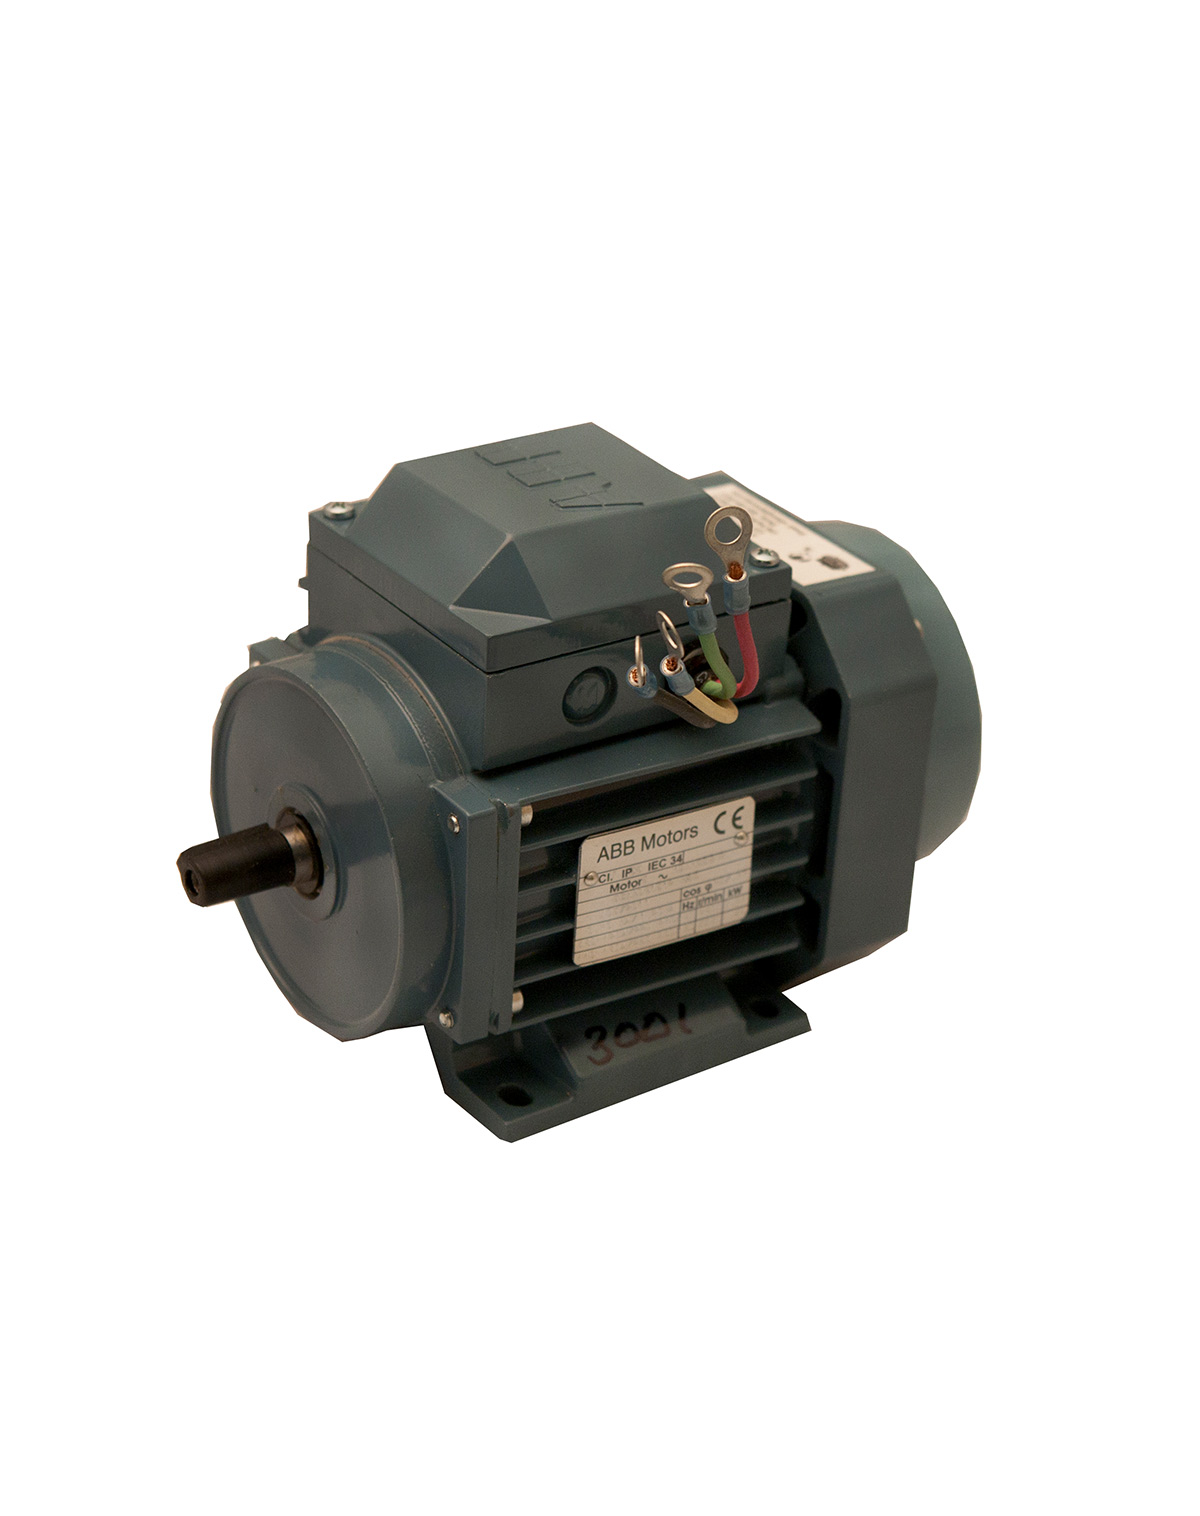 ALL-TEST Pro MOTOR GENIE® Training Motor